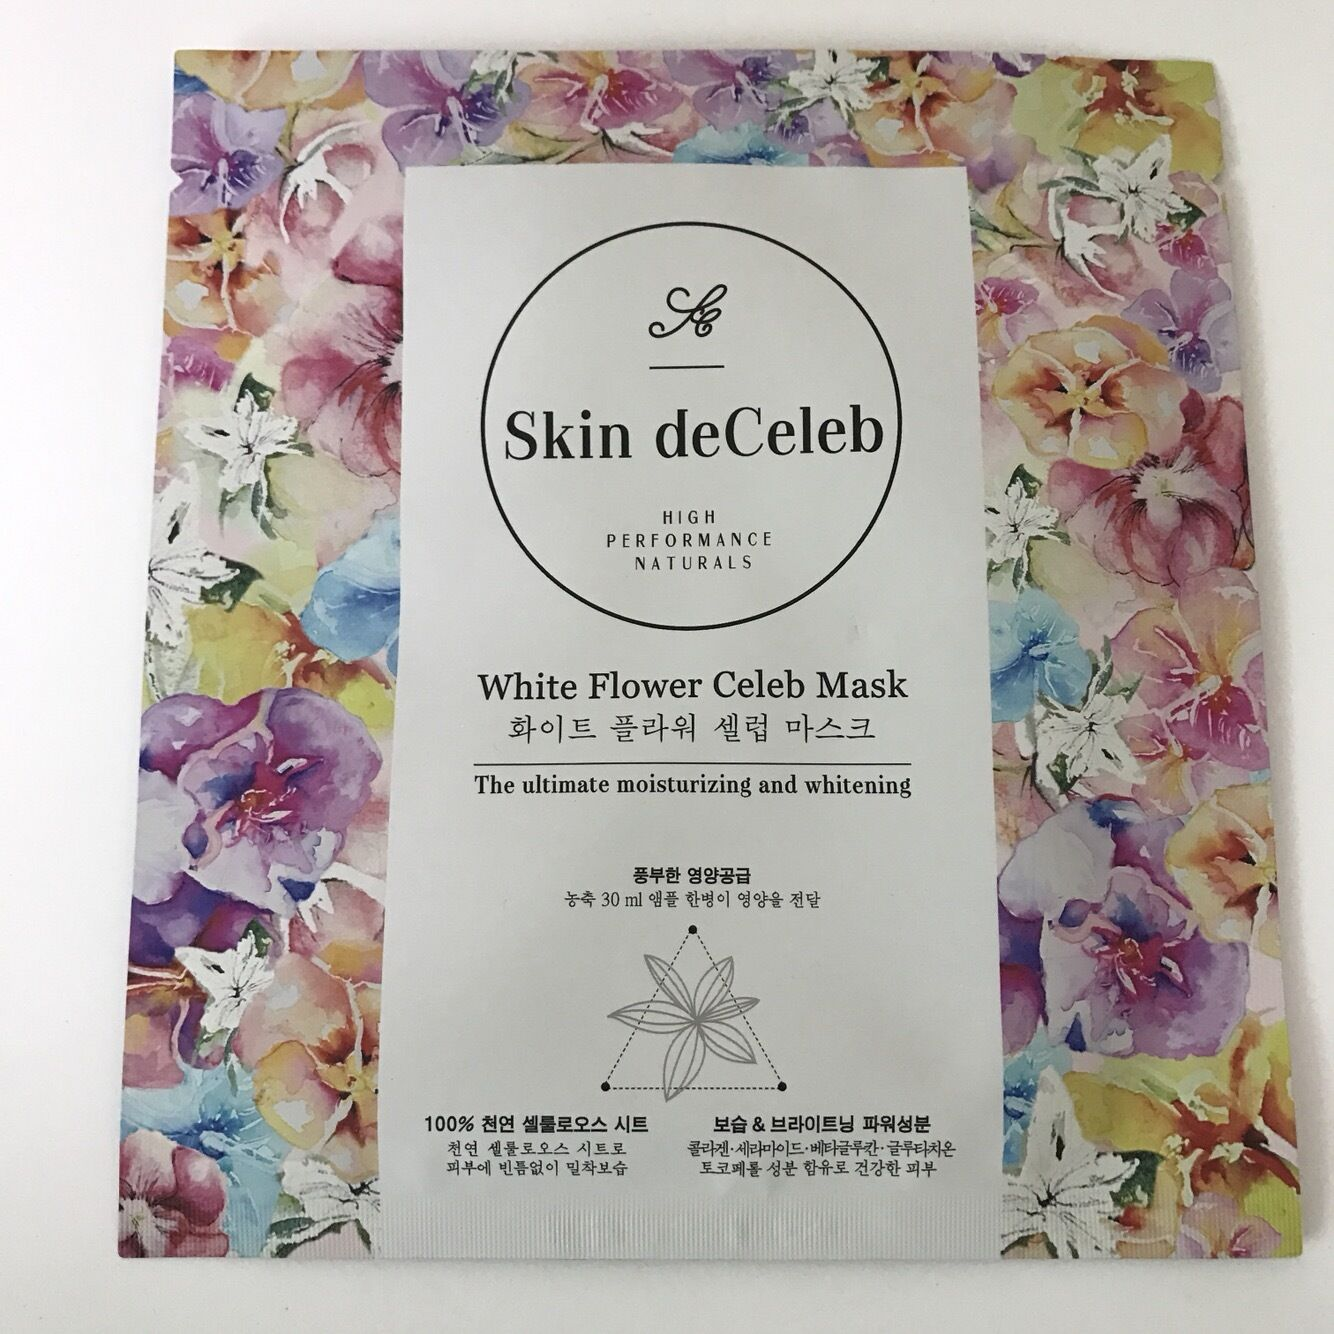 Skin deCeleb High Performance Naturals Mask 30ml/1.01fl.oz.